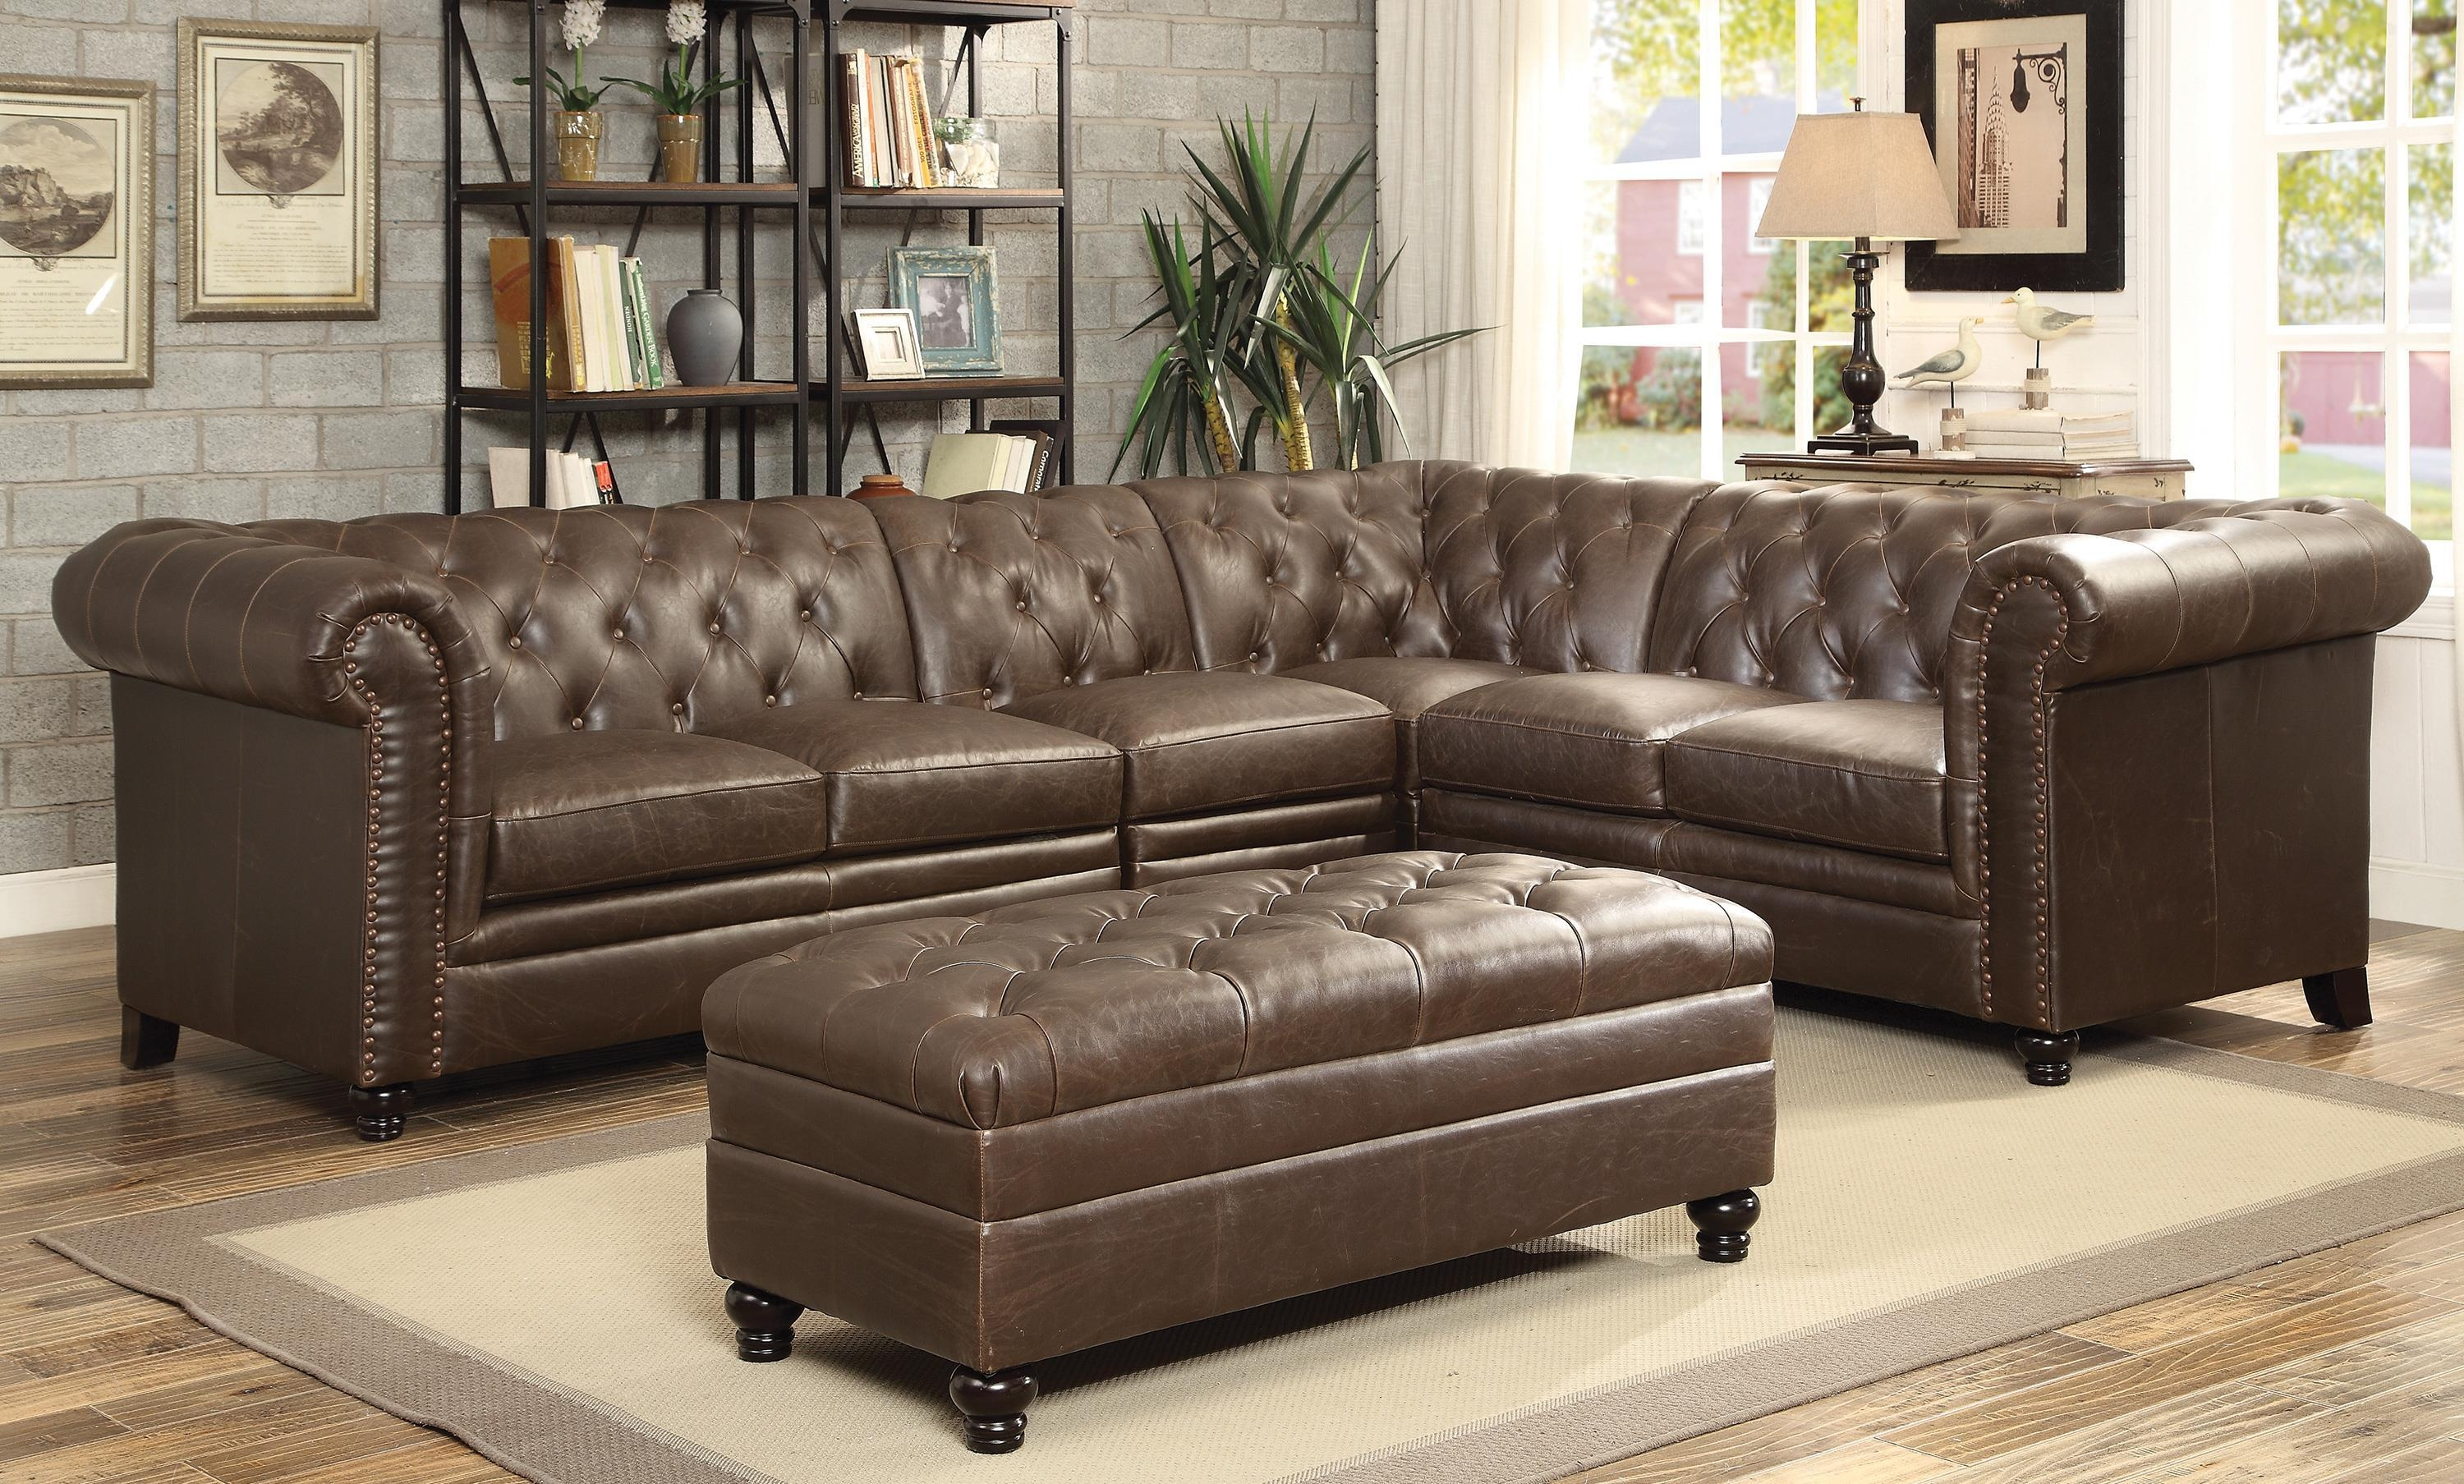 Living Room : Luxury Microfiber Sectional Sofa With Chaise Inside Cheap Tufted Sofas (Image 9 of 23)